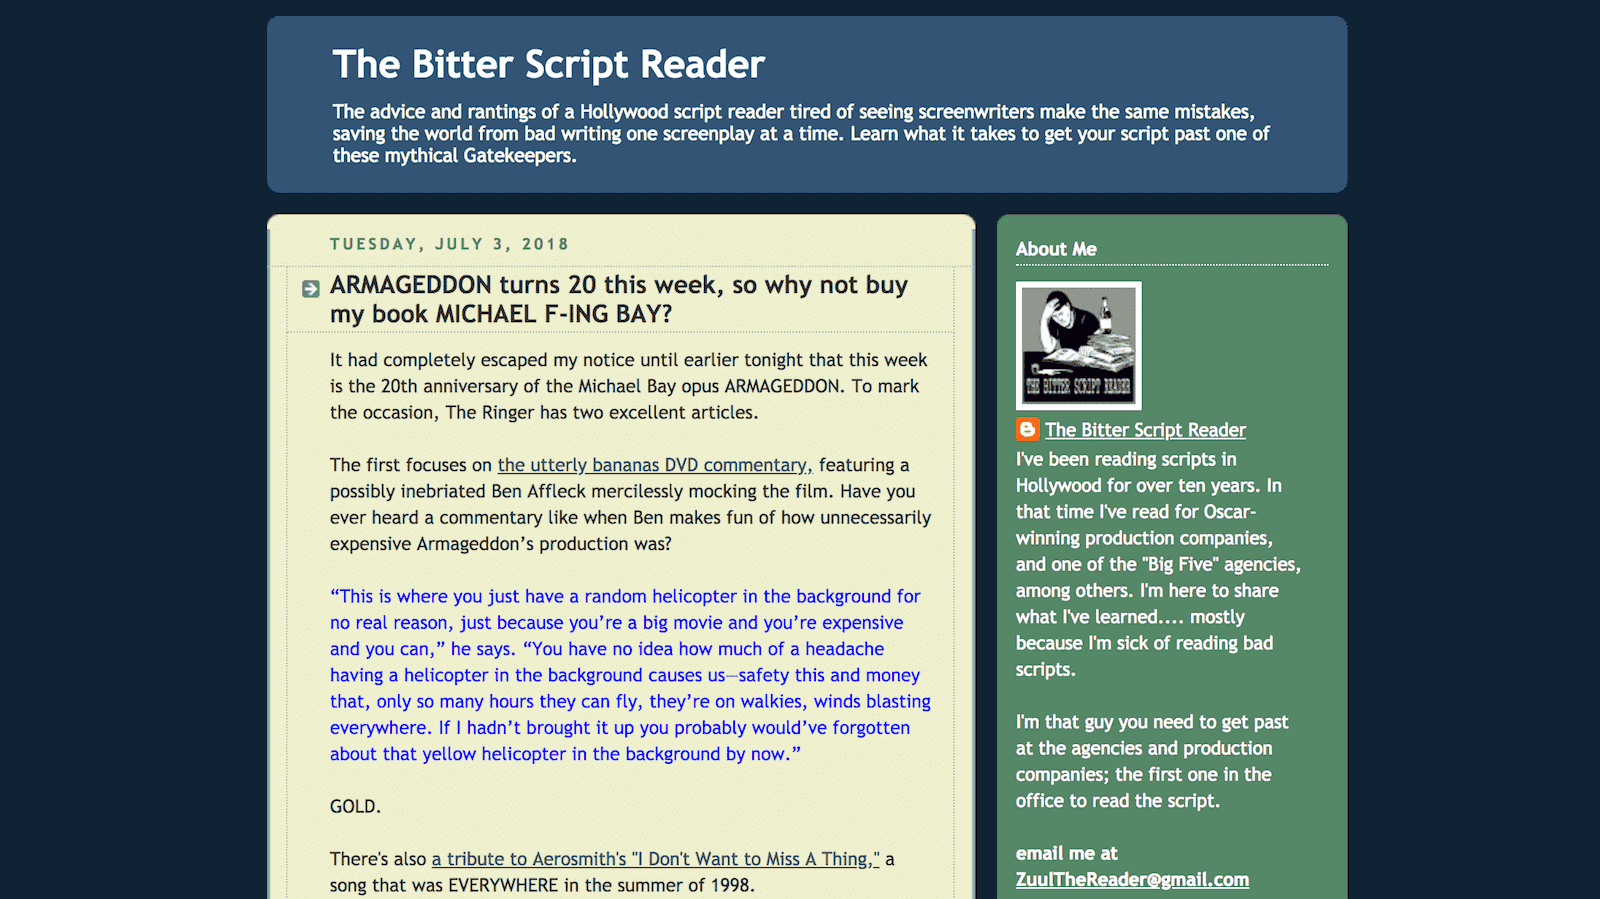 Best Screenwriting Websites - Script Writers - Bitter Script Reader Blog-min